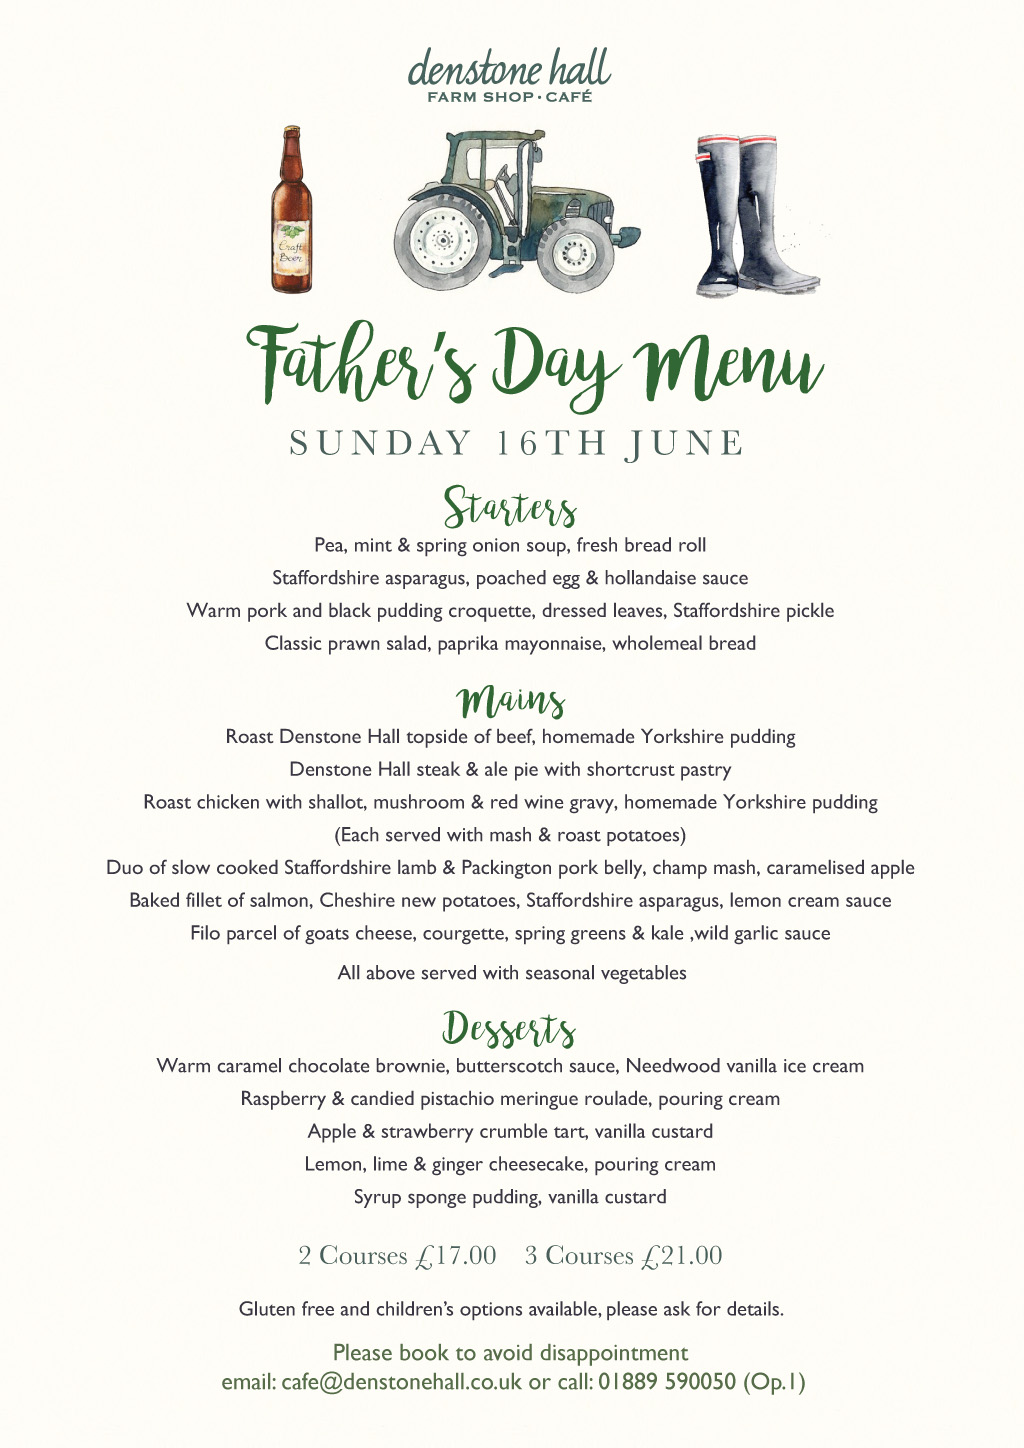 Father's Day Menu - Sunday 16th June 2019